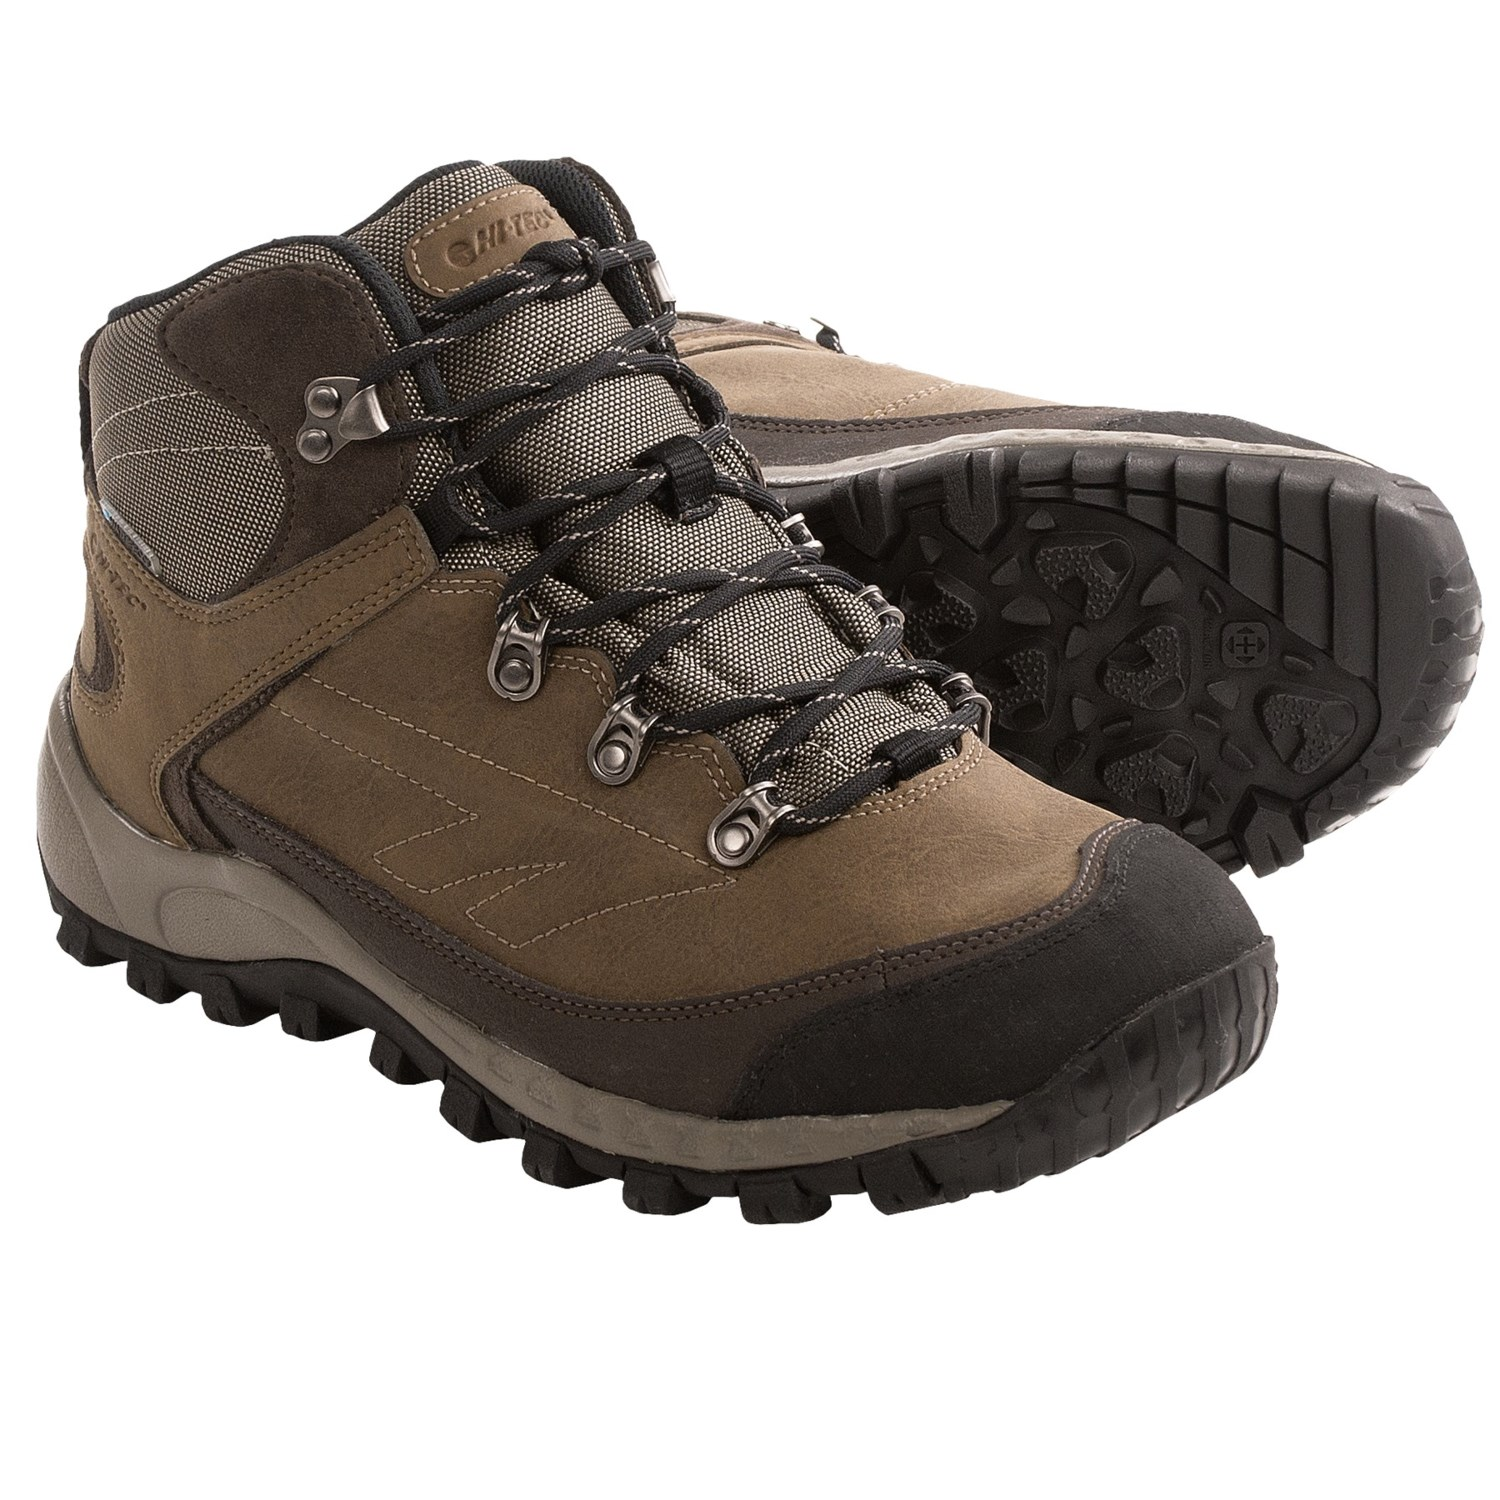 Nike ACG Hiking Boots for Men